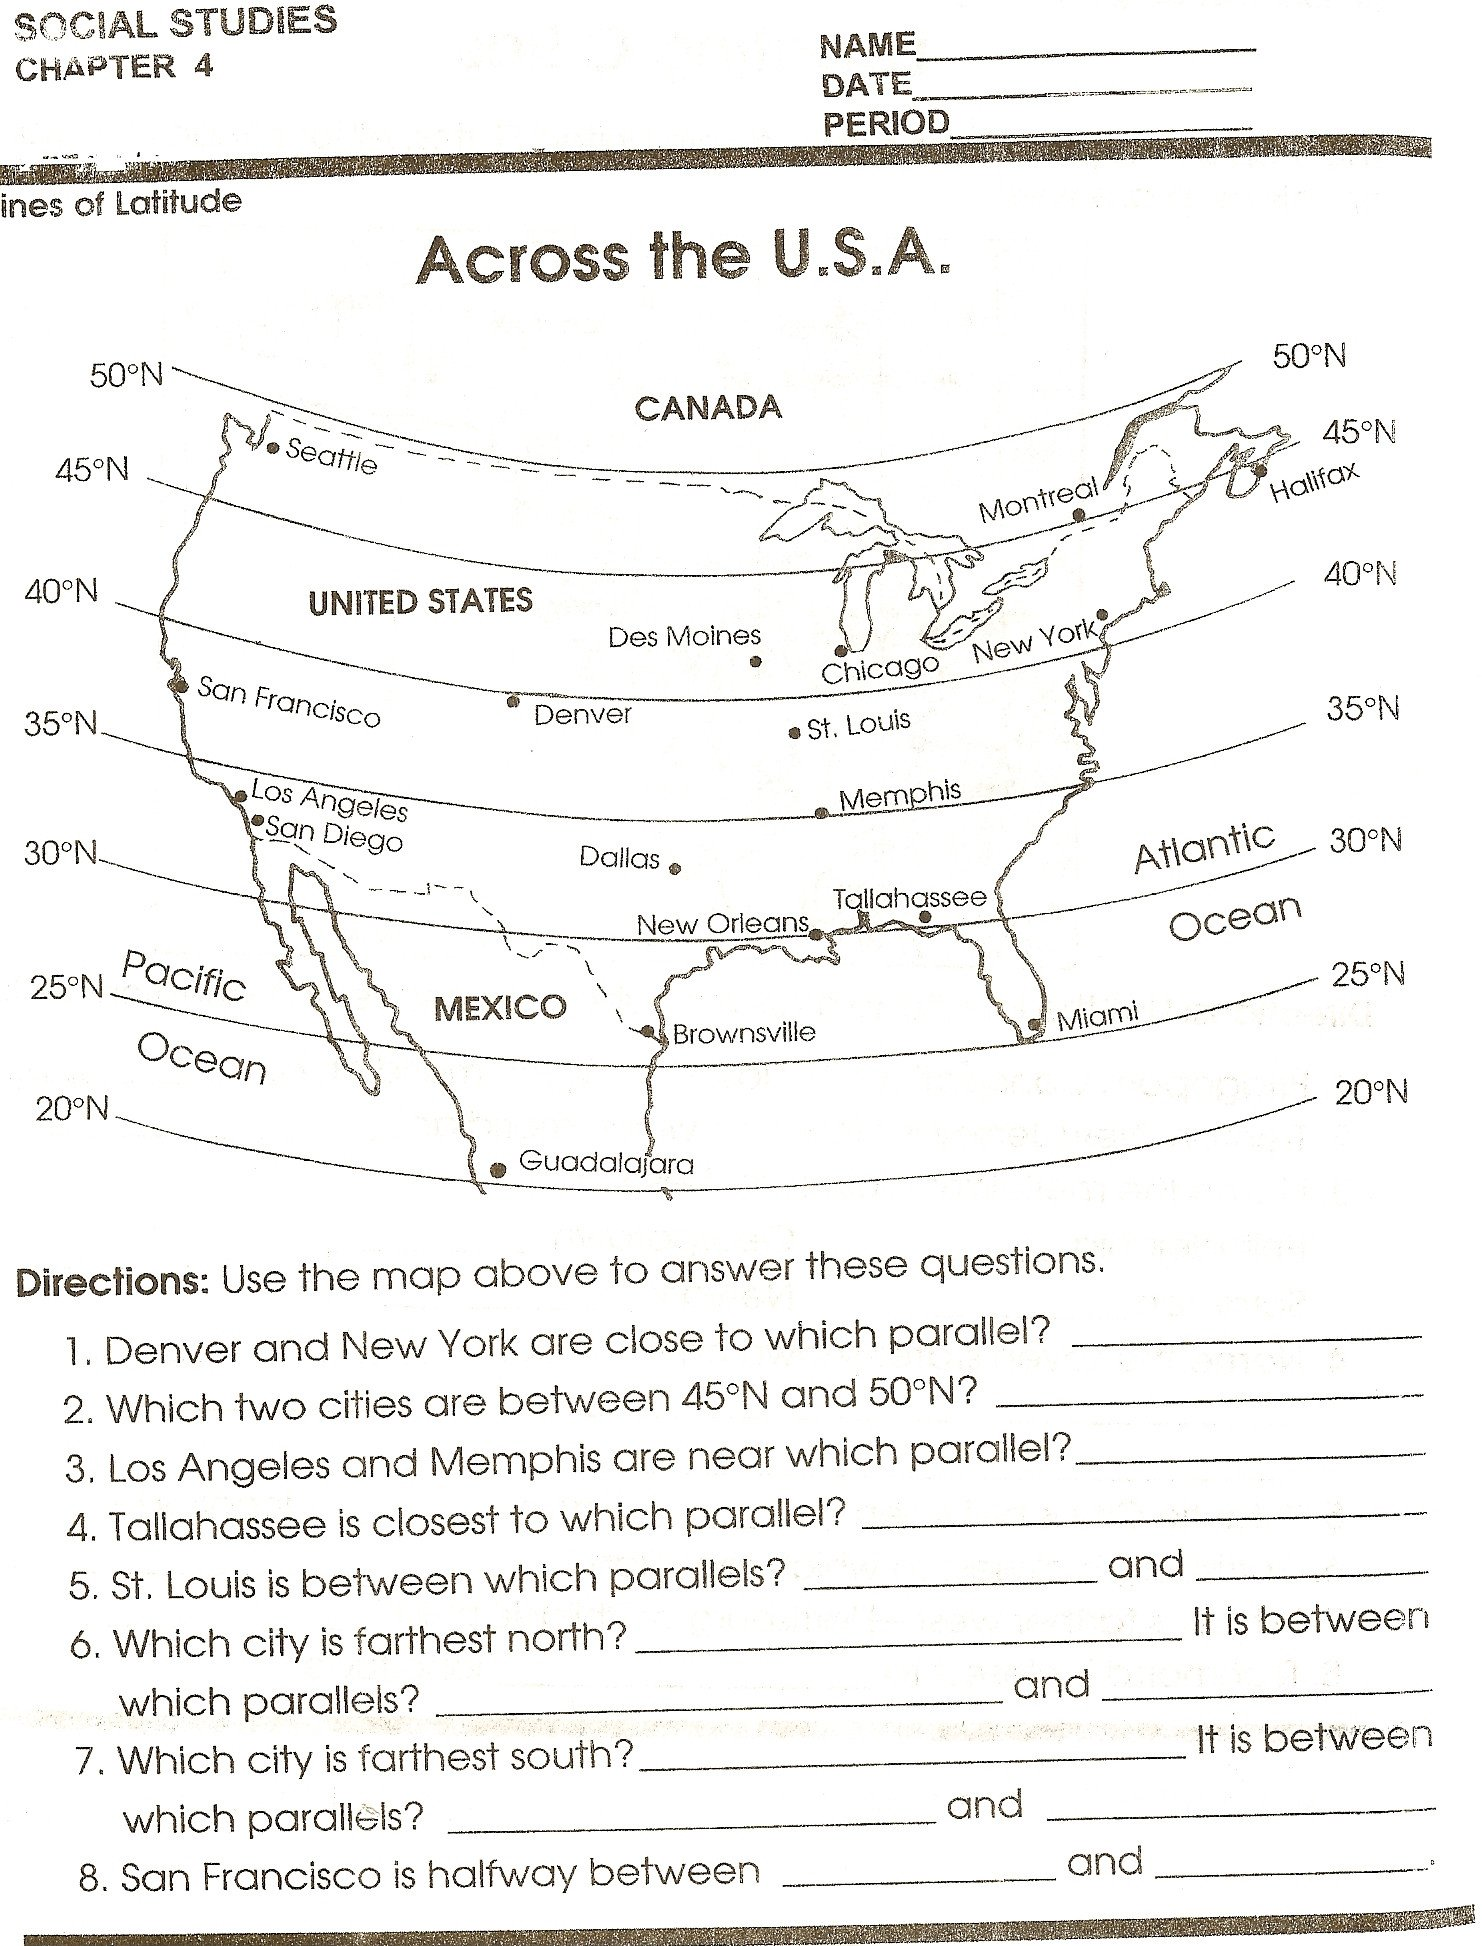 Social Studies Worksheets 8th Grade social Stu S Skills